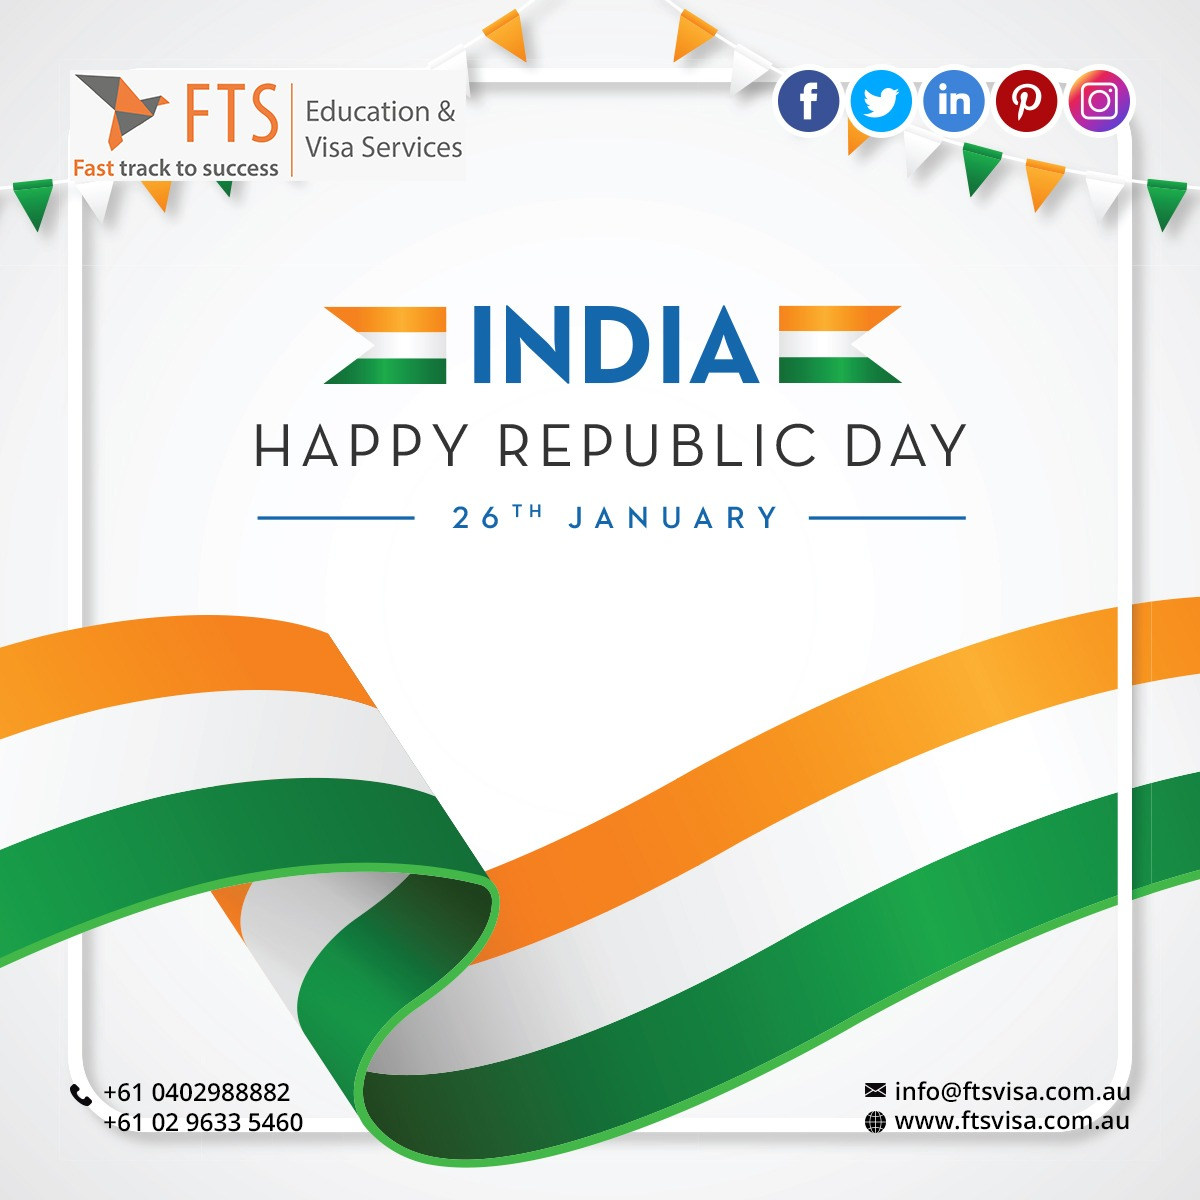 """""""Happy Republic Day to all the Global Indian Community - @ftsvisa Team  Call/Reach Us @ +61 0402988882, +61 02 9633 5460  #ftsvisa #fts #fasttracktosuccess #australia #australiaprvisa #skilledvisa #skilledvisaaustralia #mvcvper #tuesdayvibe #tuesdaymotivations #tuesdsay"""""""